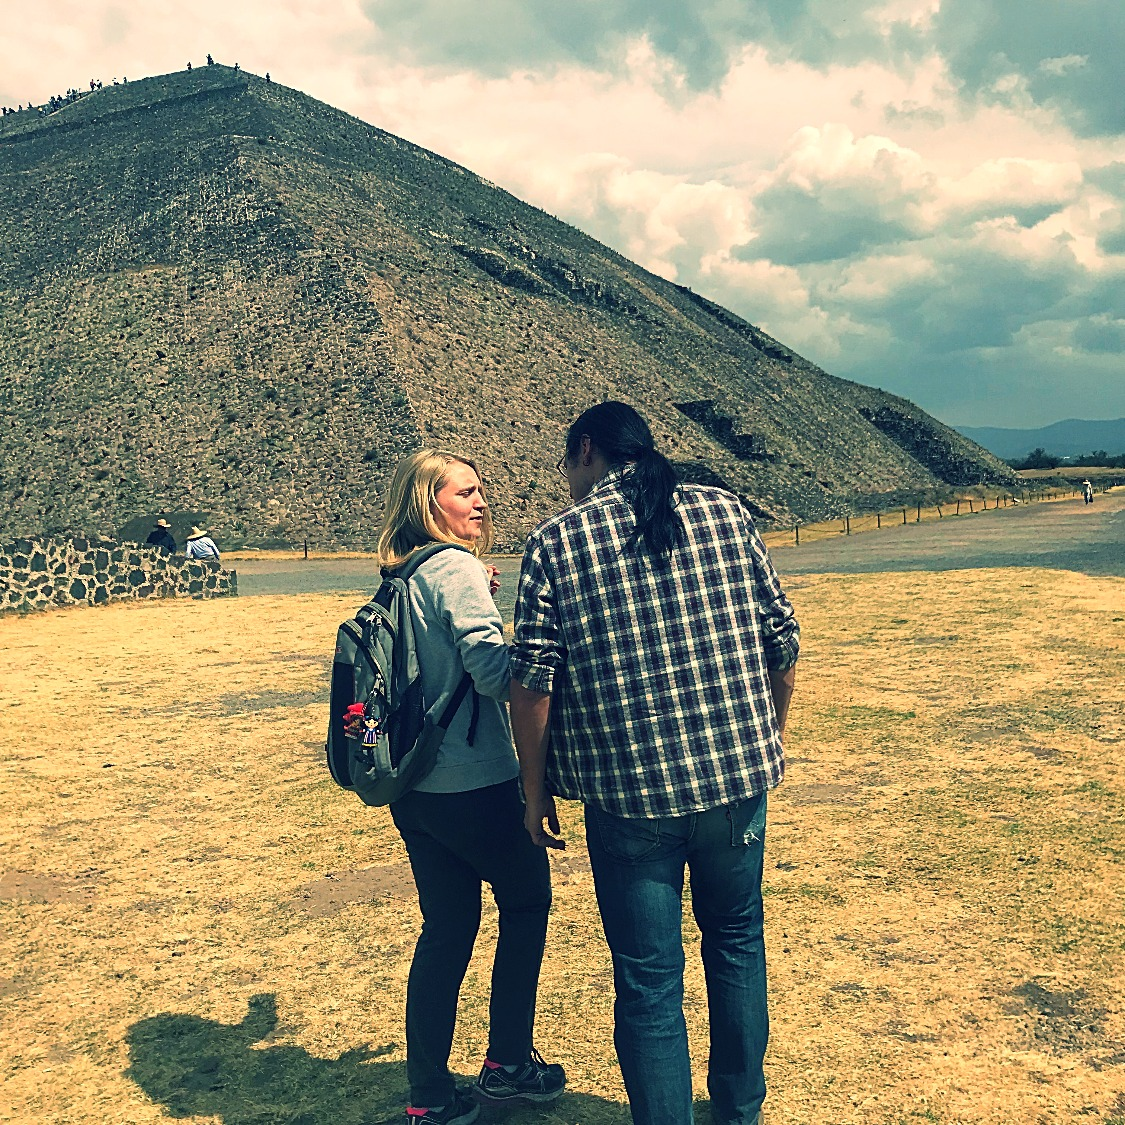 Daniel (our local expert) telling us about how Teotihuacán was a hub of art and commerce at the time.